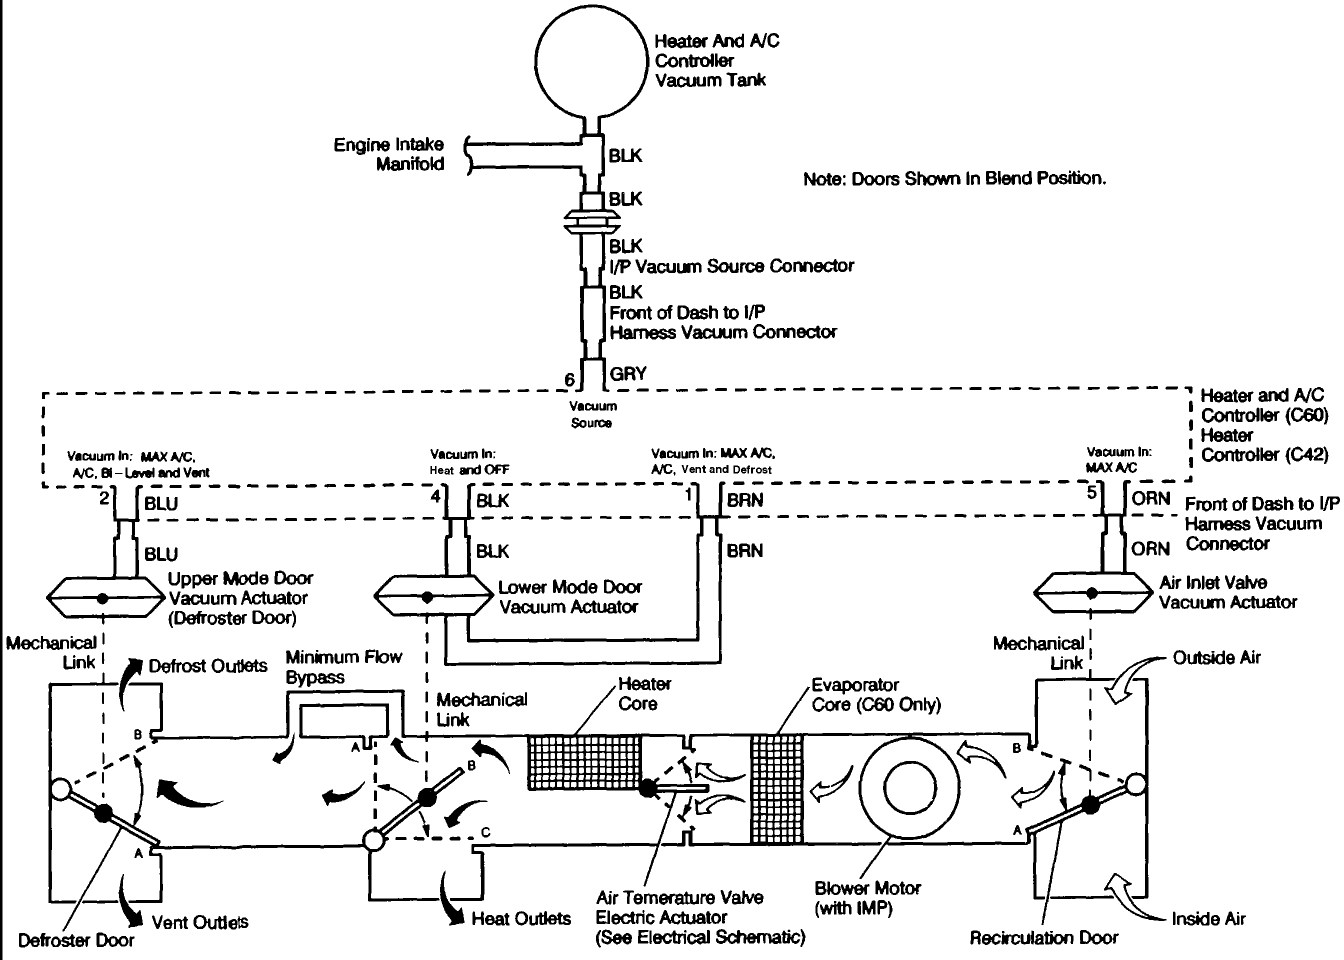 2001 Chevy S10 Vacuum Line Diagram Together With S10